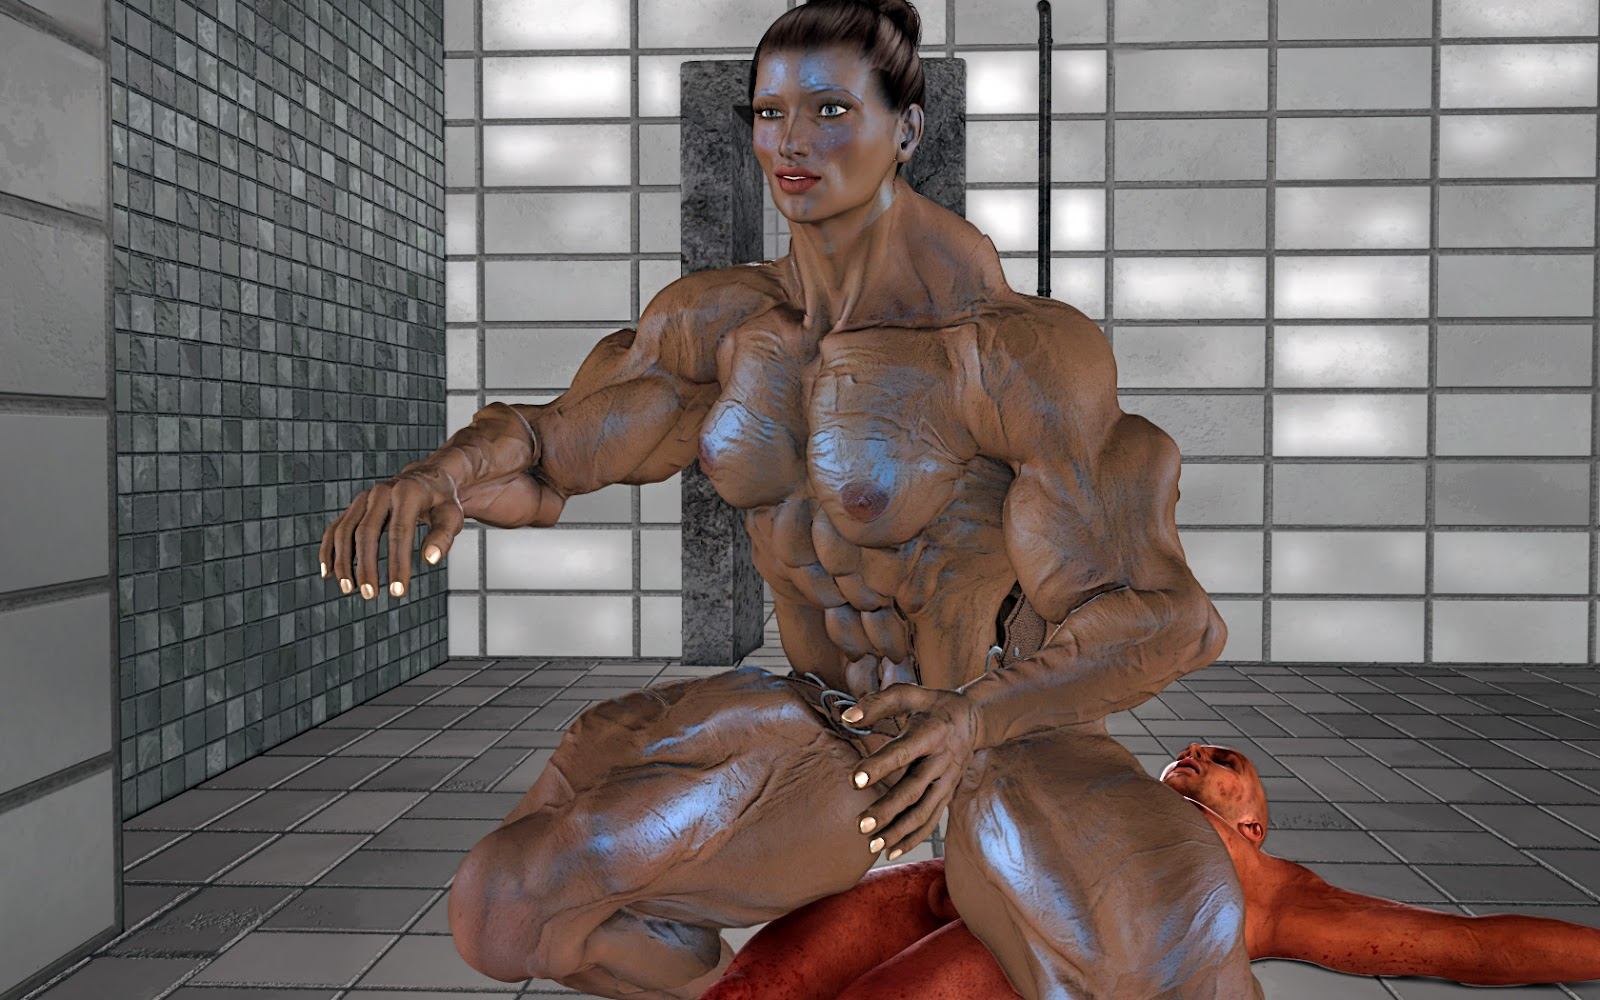 Muscle women 3d video fucks image